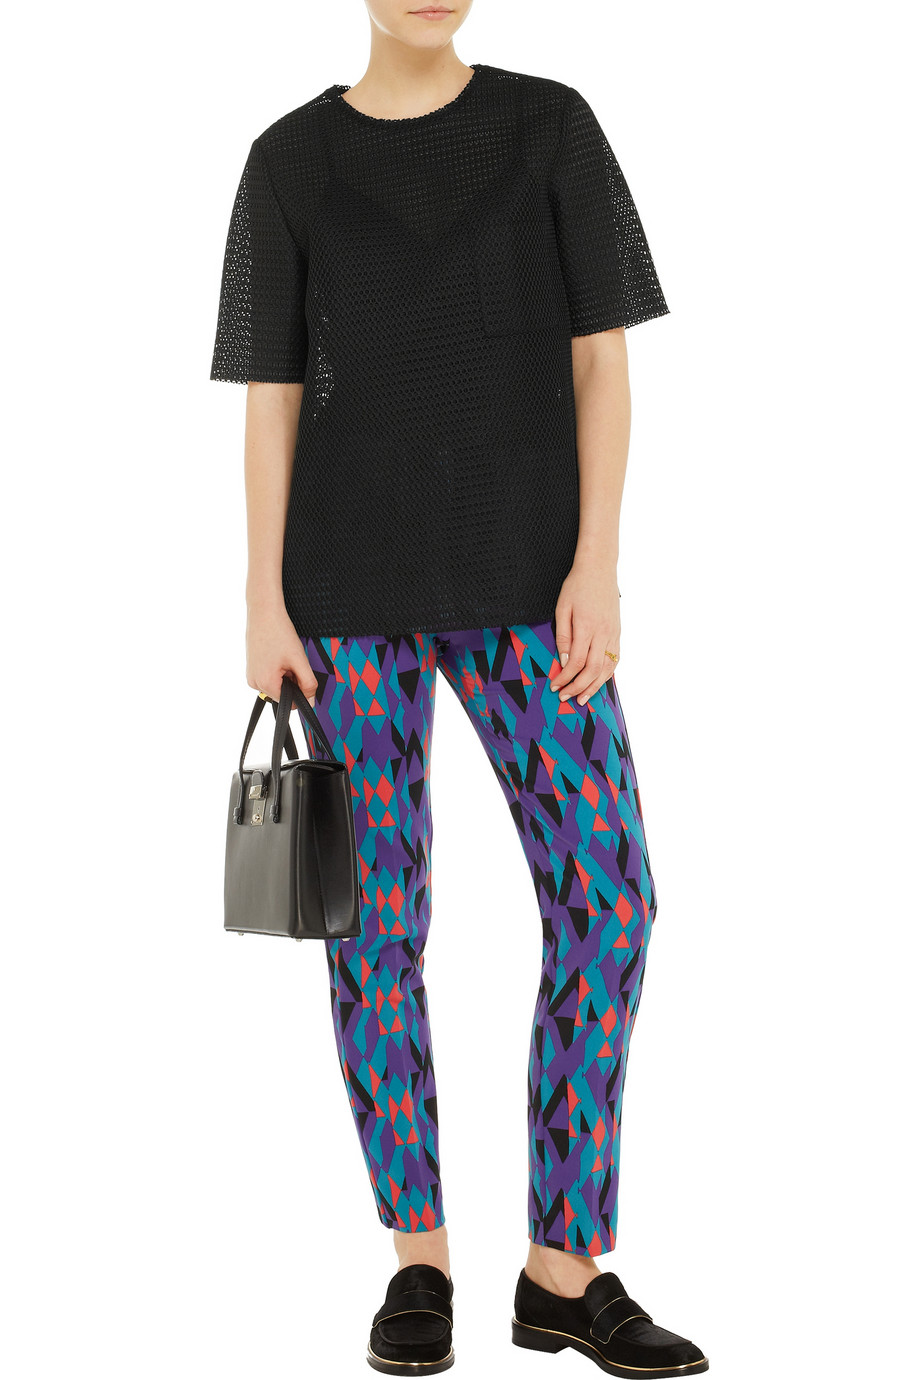 M Missoni Geometric-print twill straight-leg pants – 55% at THE OUTNET.COM